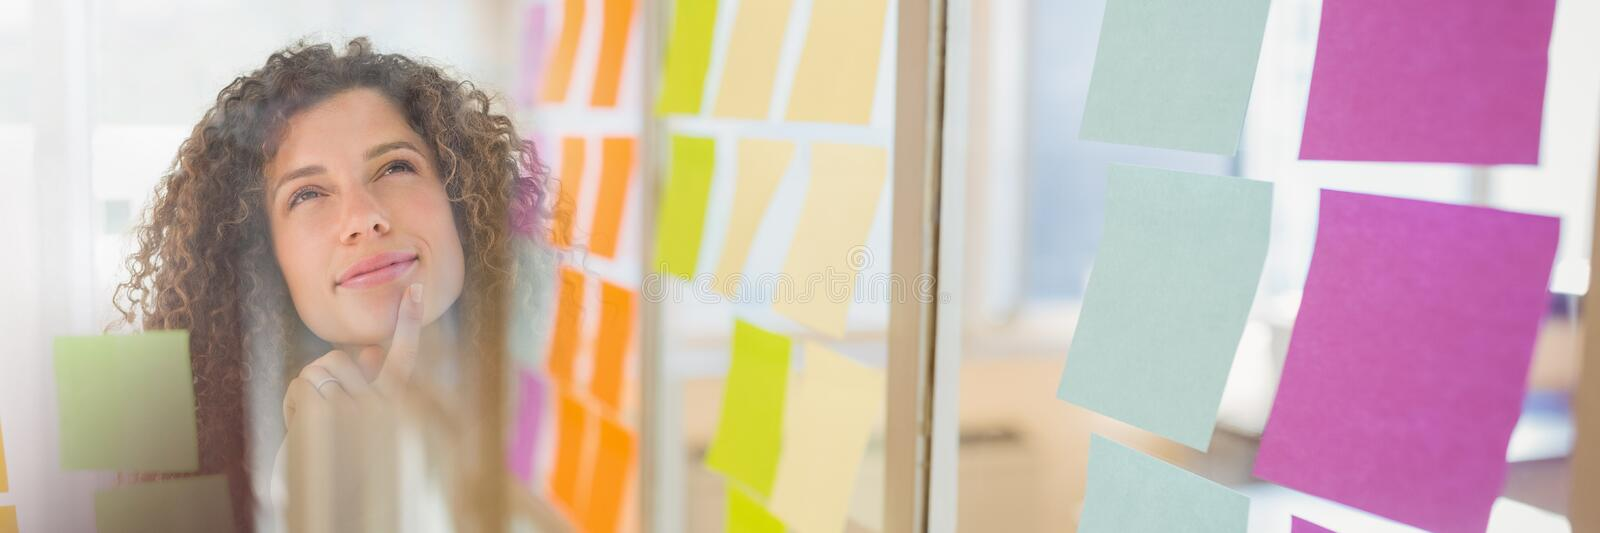 Woman looking up at sticky notes and sticky note transition royalty free stock images